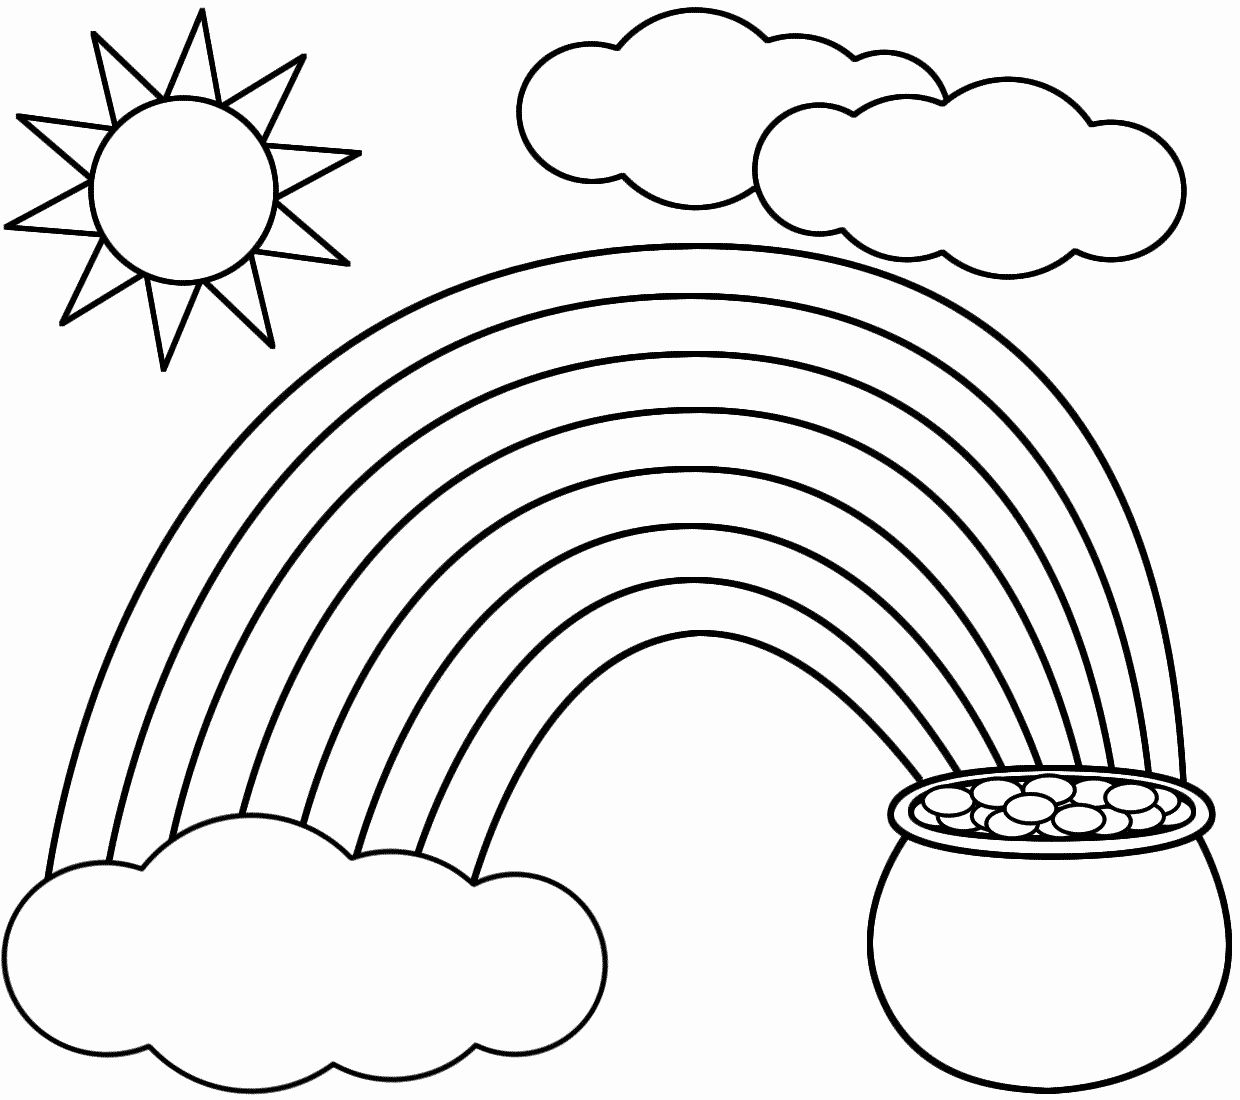 24 St Patricks Day Coloring Page In 2020 St Patricks Day